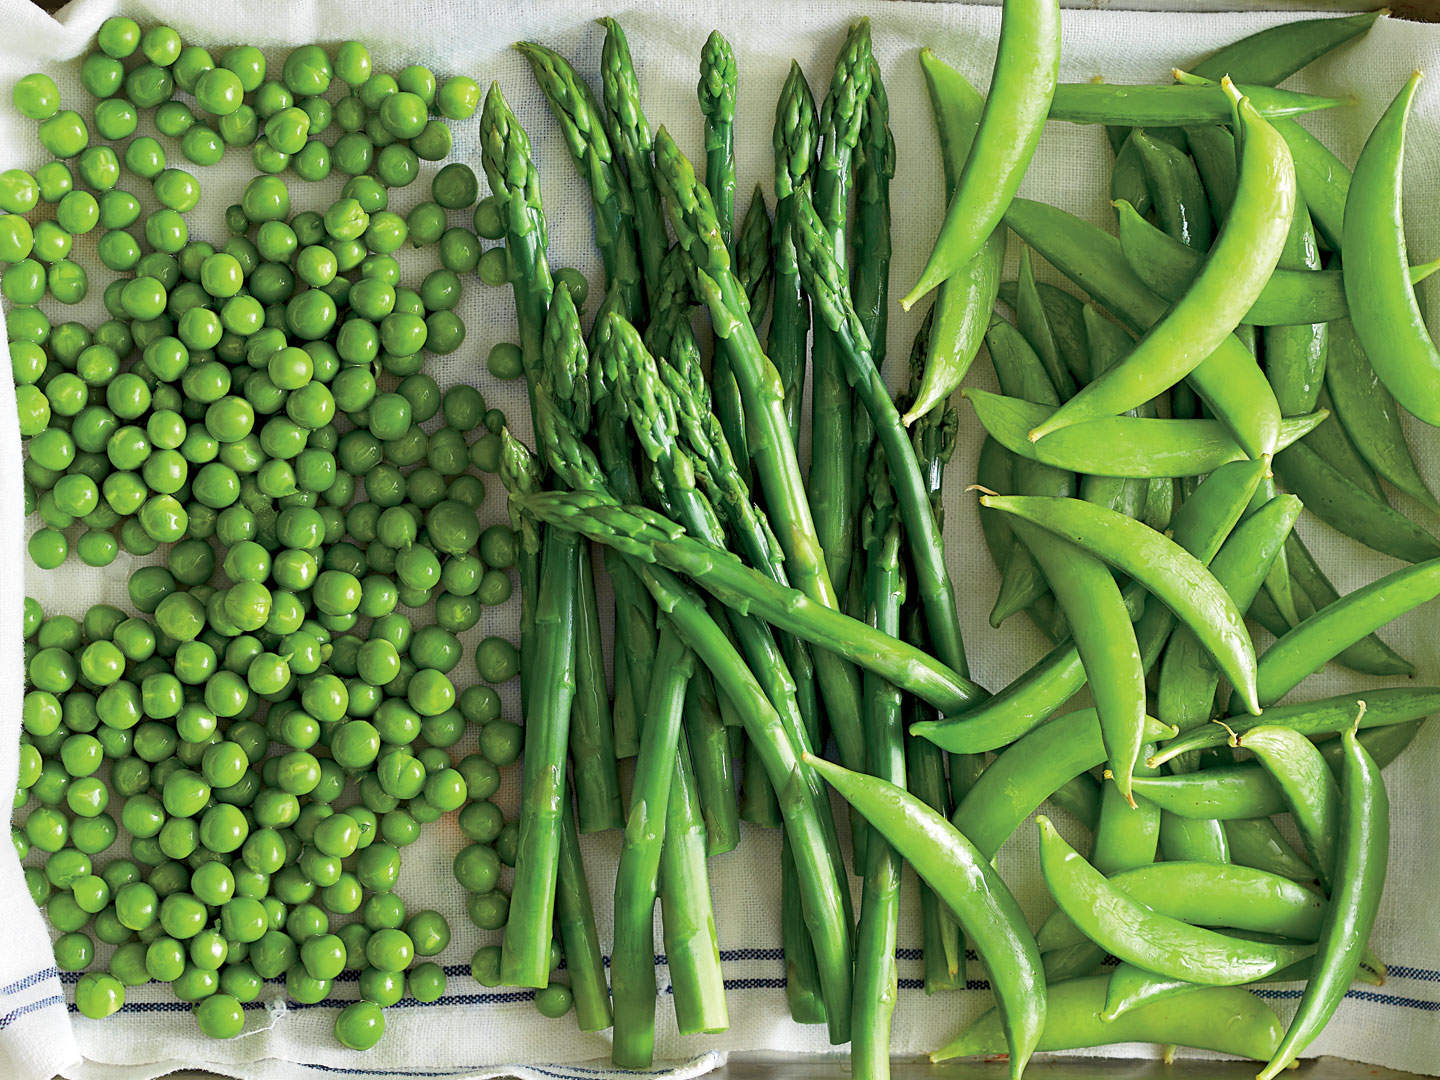 blanching-green-vegetables-video